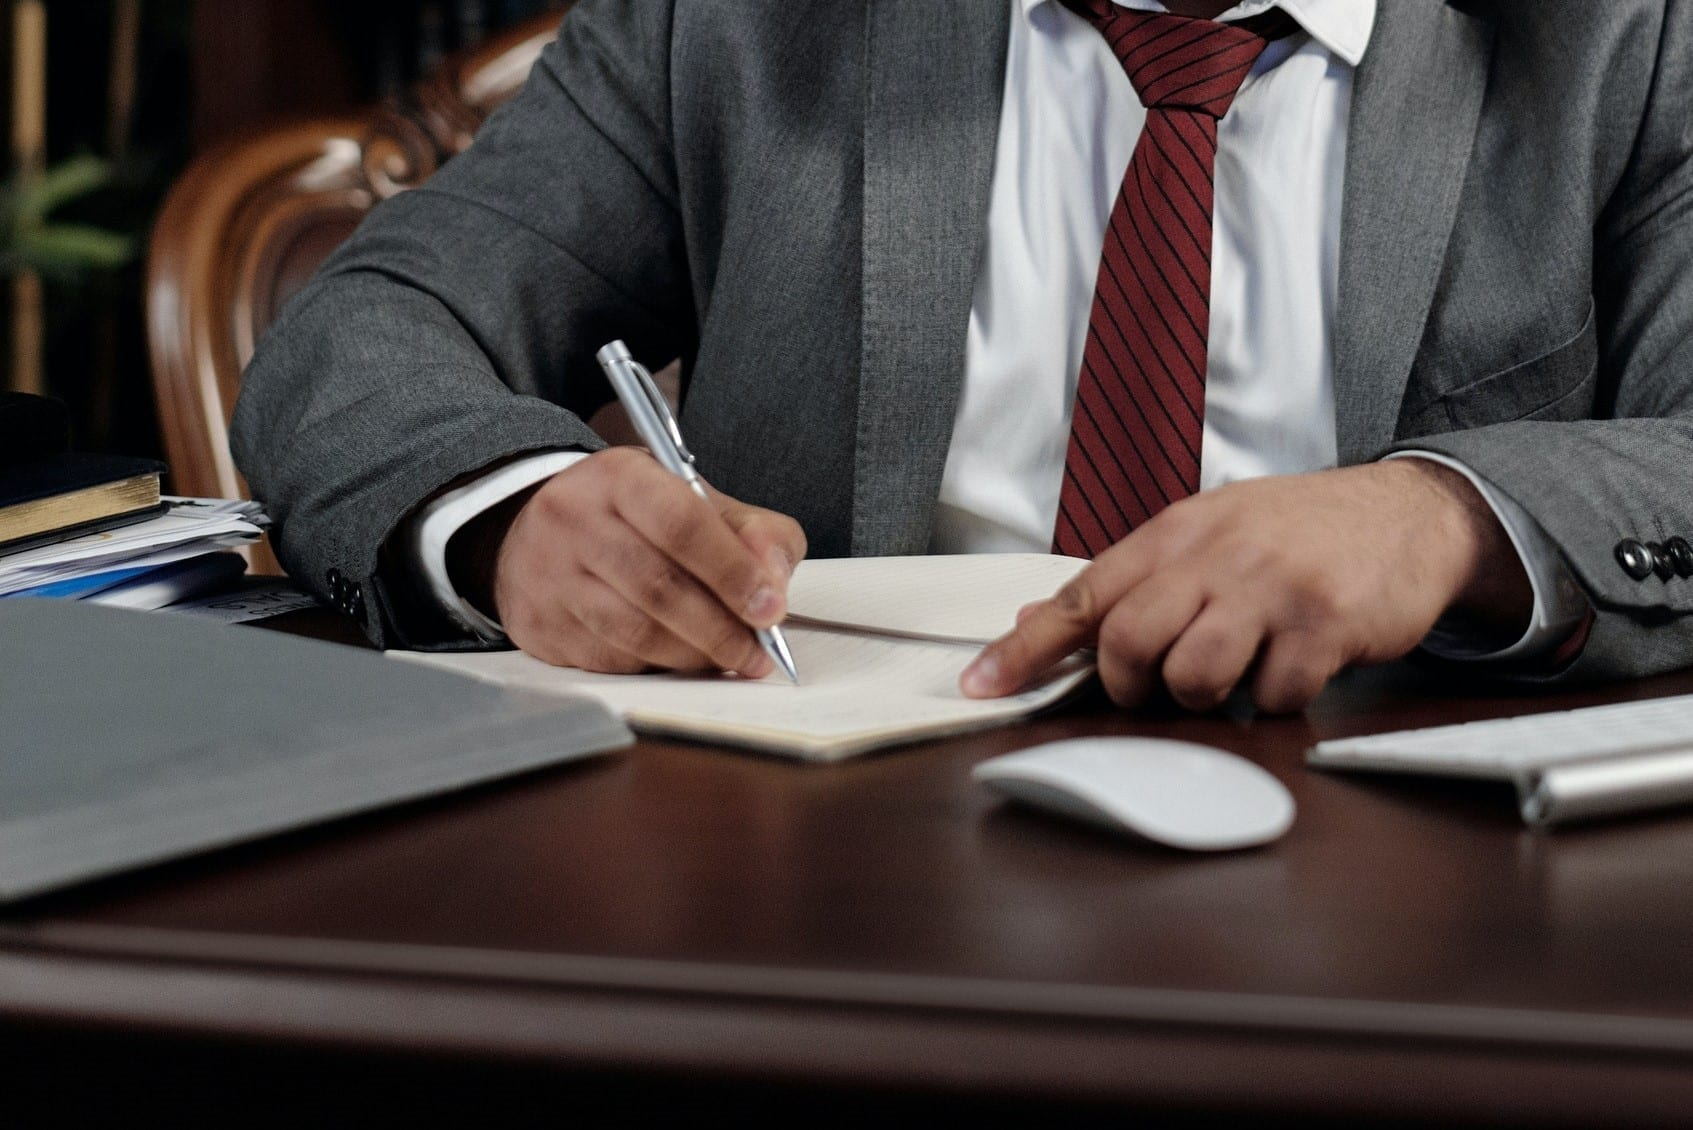 If you cannot afford a lawyer for your case, you have options.